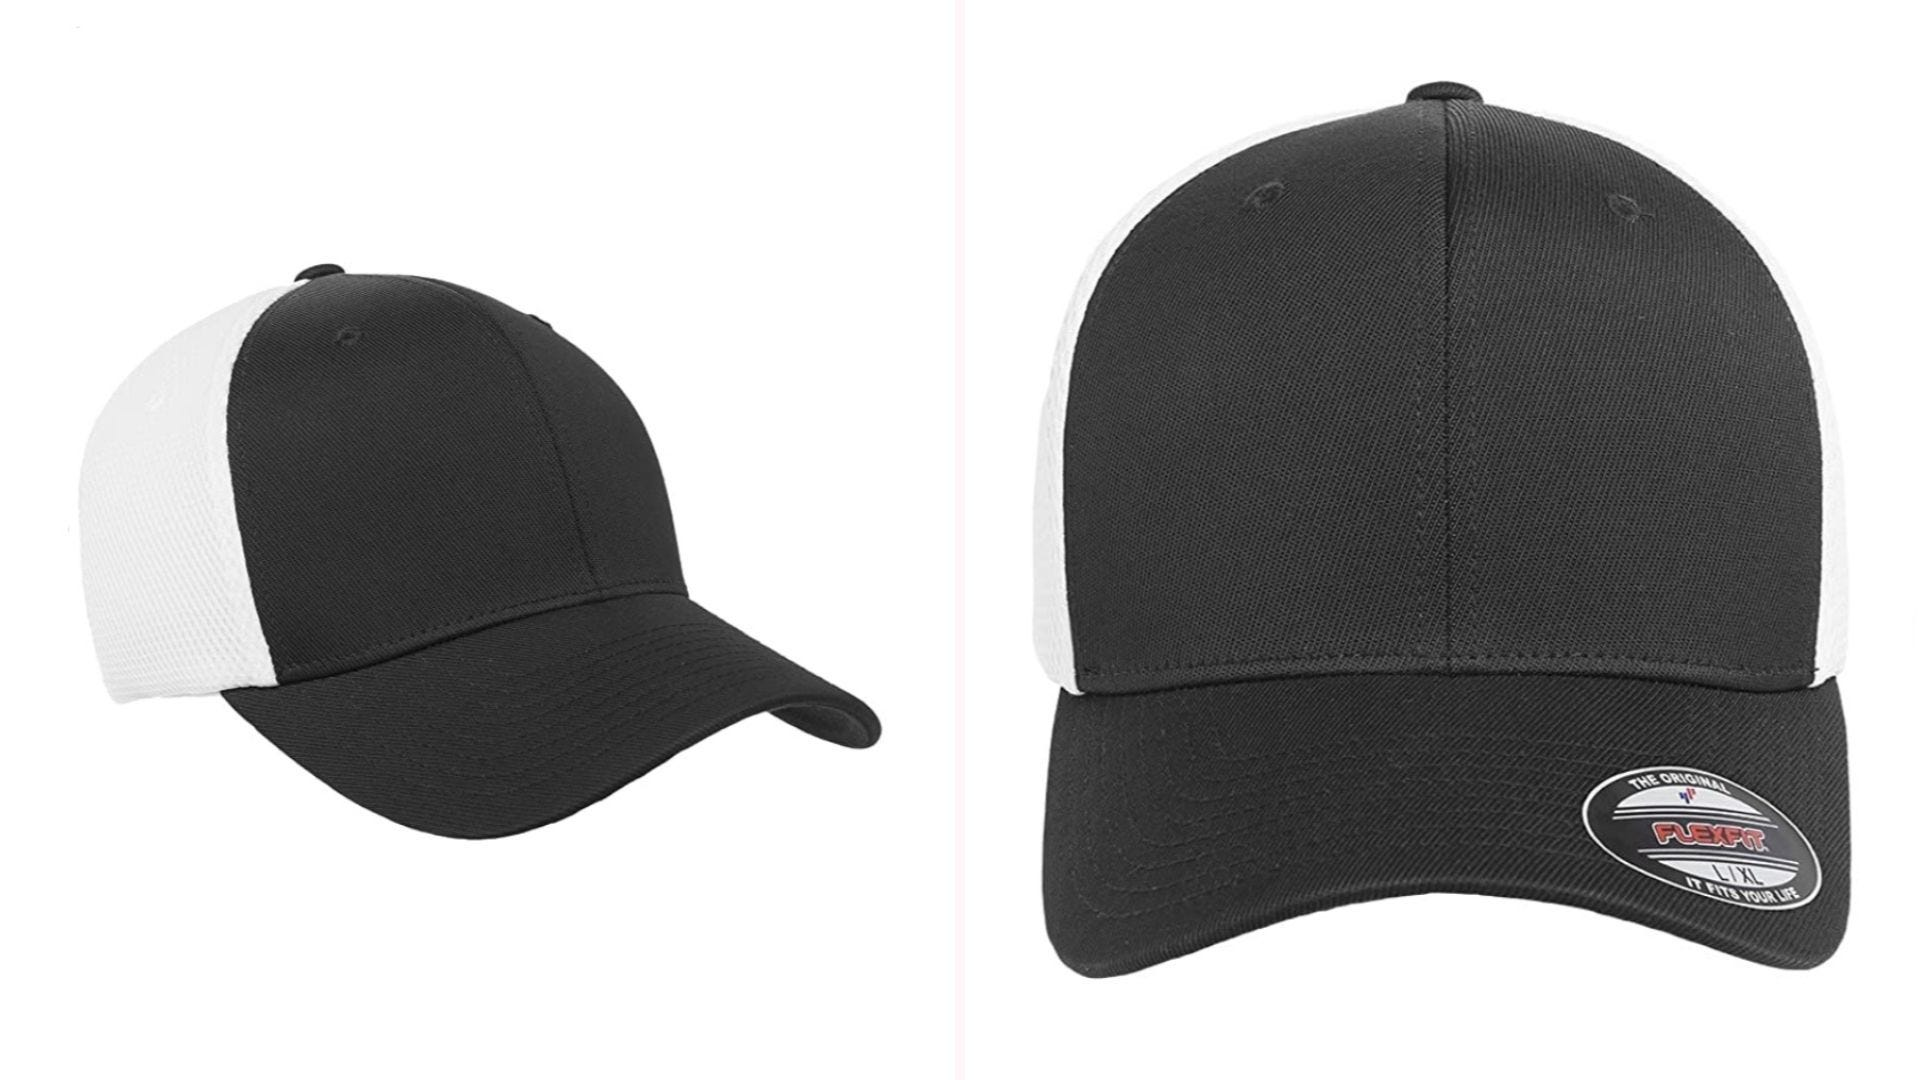 Two views of a black hat with white mesh.